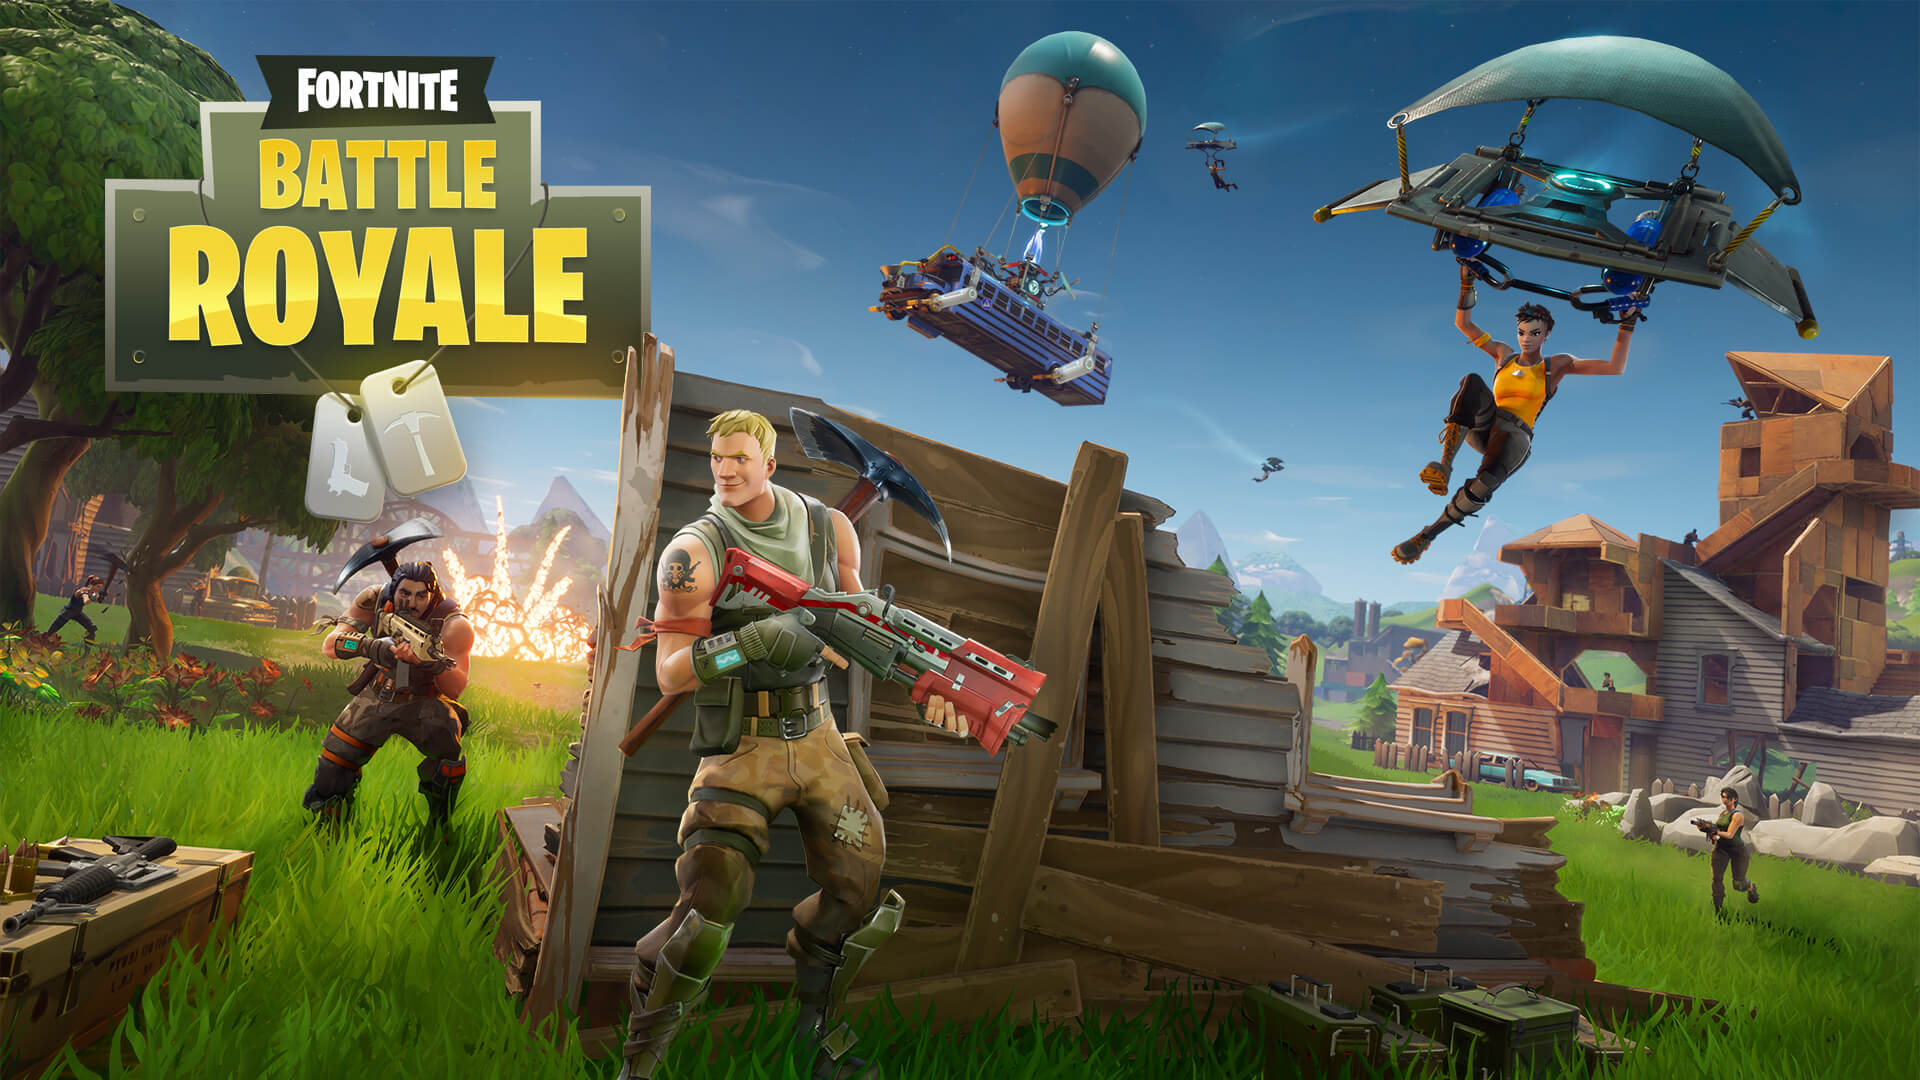 Fortnite Battle Royale update will add silenced SMG and buff the assault rifle